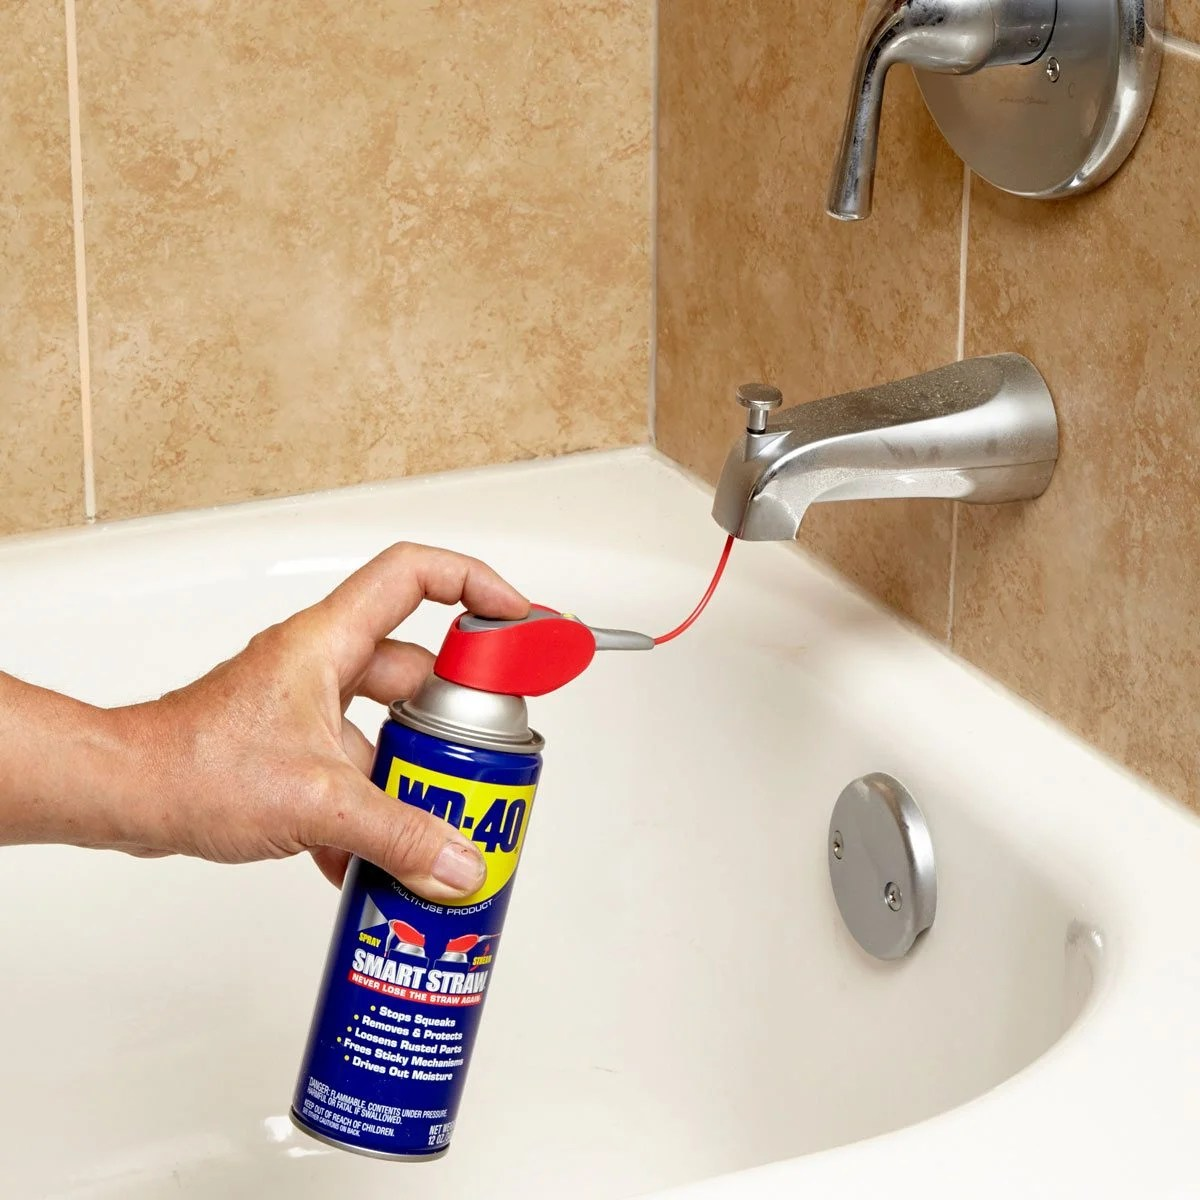 Wd40 On Wood Cabinets